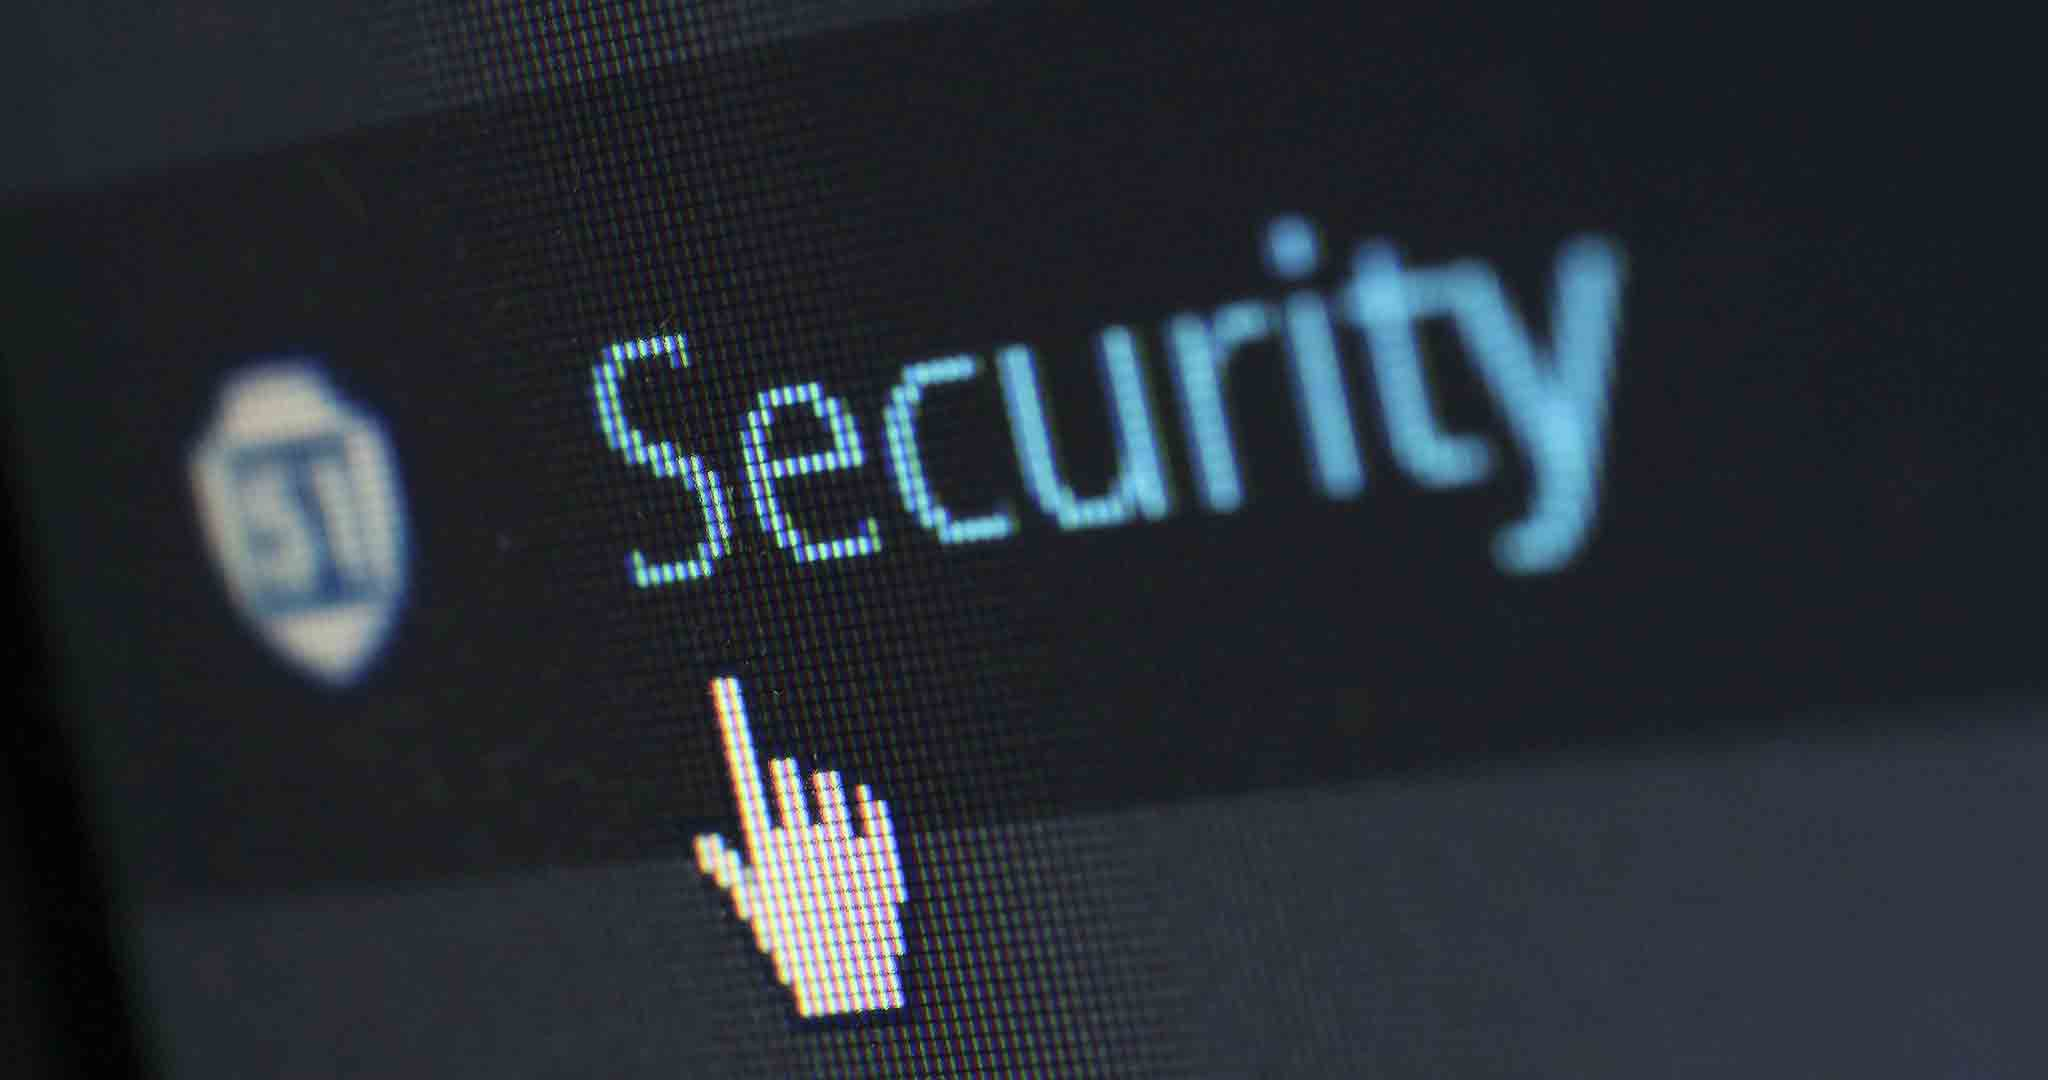 cyber security cybersecurity device tehcnology stock photos